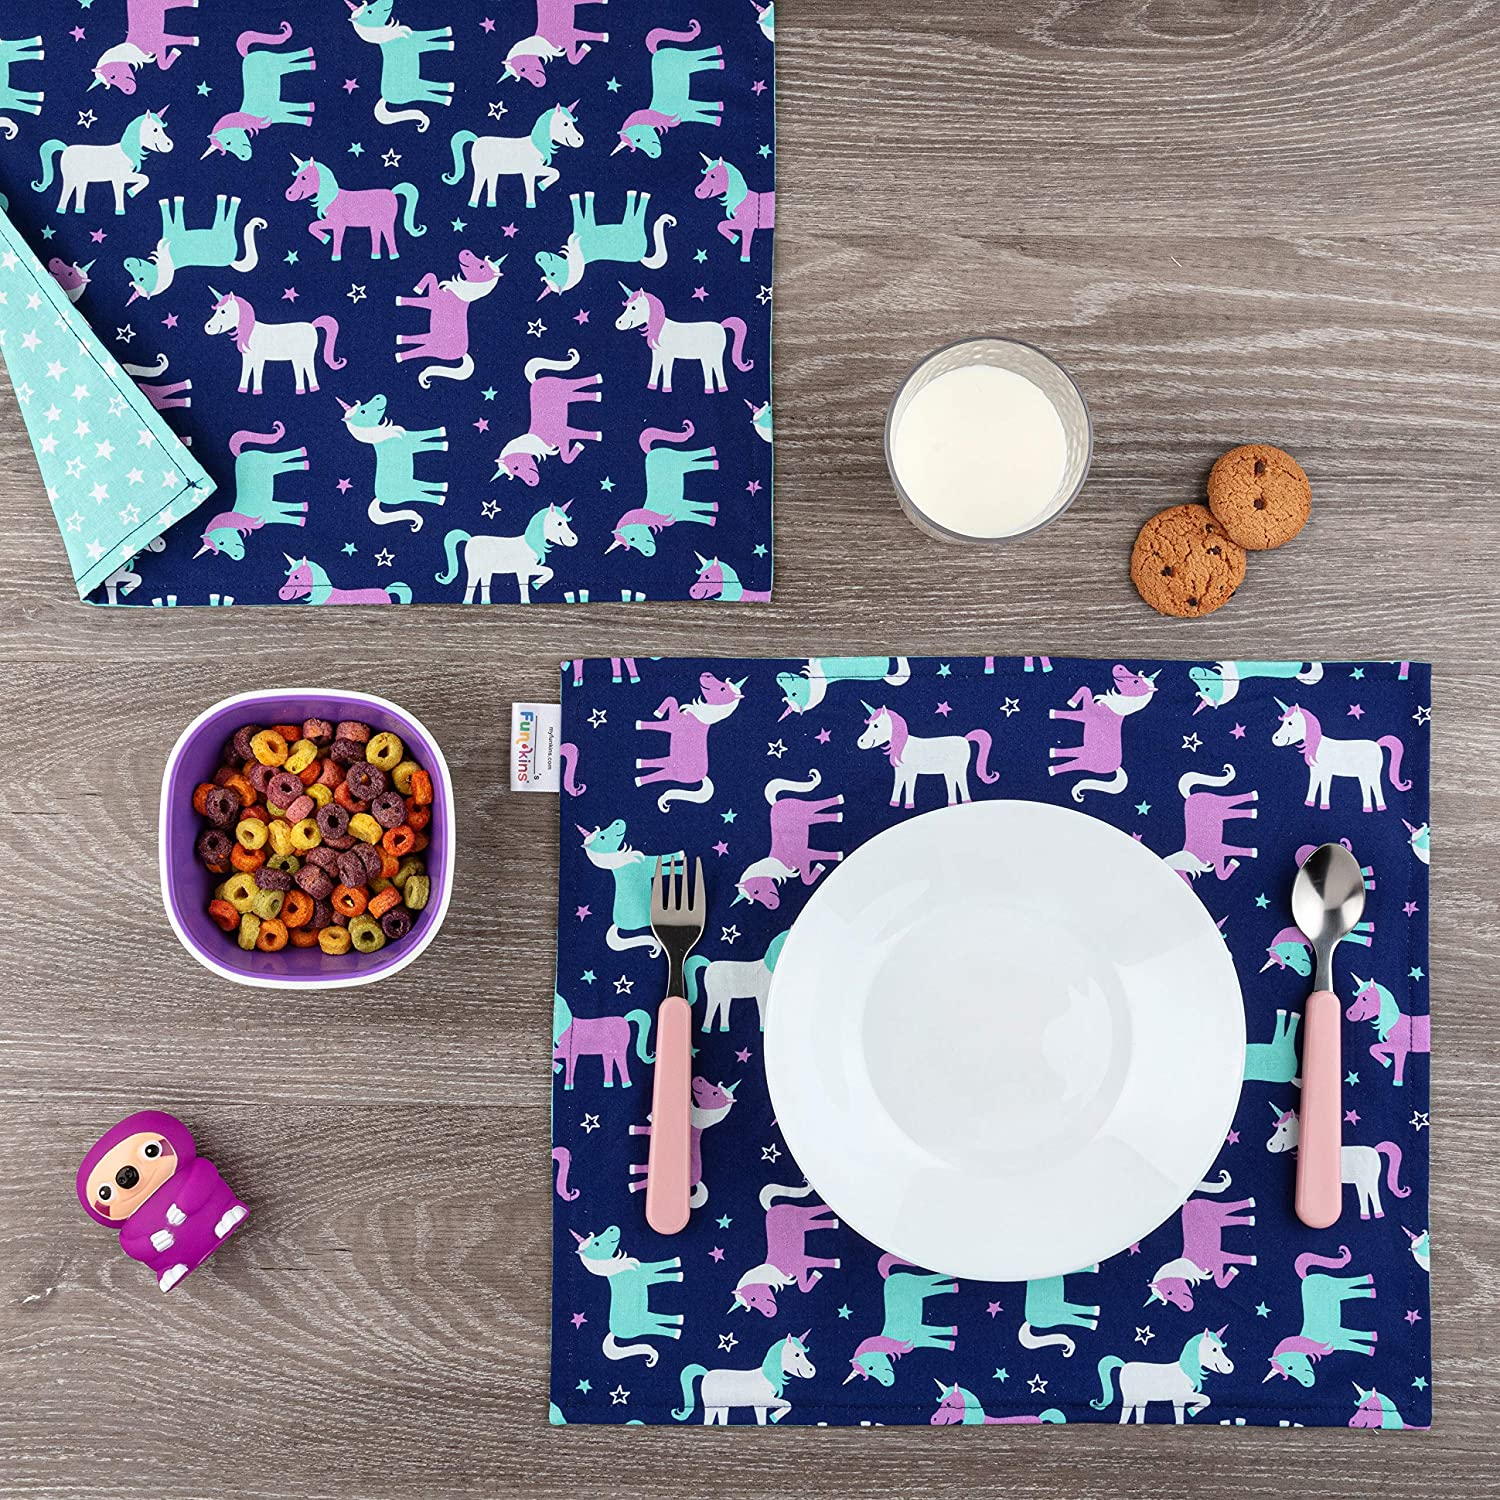 """Eco-Friendly Set of 2 Machine Washable FUN KINS Funkins Cloth Placemats for Kids 15/"""" x 13/"""" 2-ply Ballerinas Reusable"""